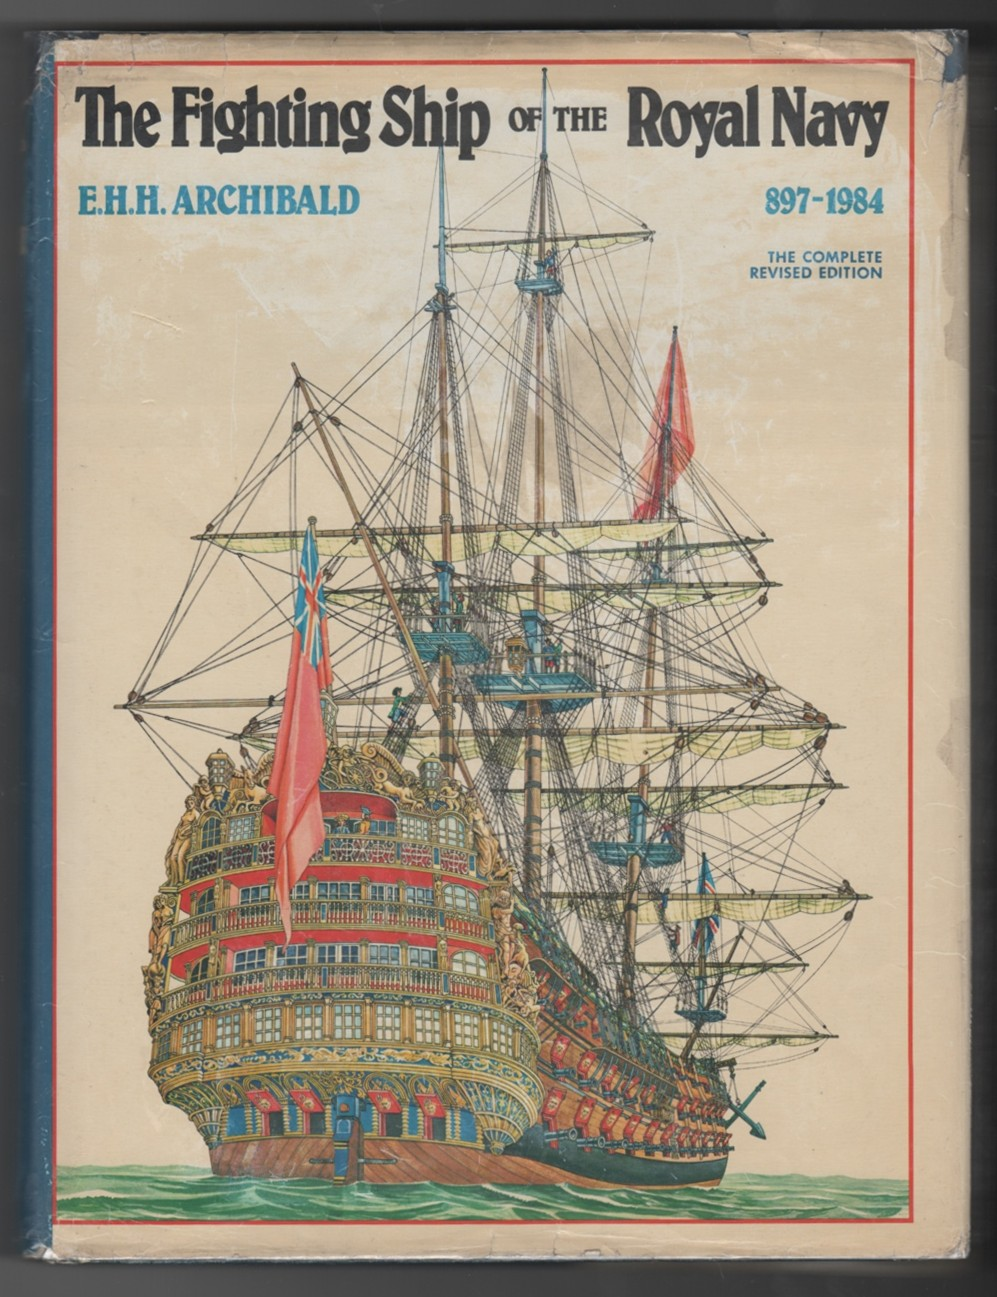 The Fighting Ship of the Royal Navy, 897-1984 - Archibald, E.H.H. & Ray Woodward